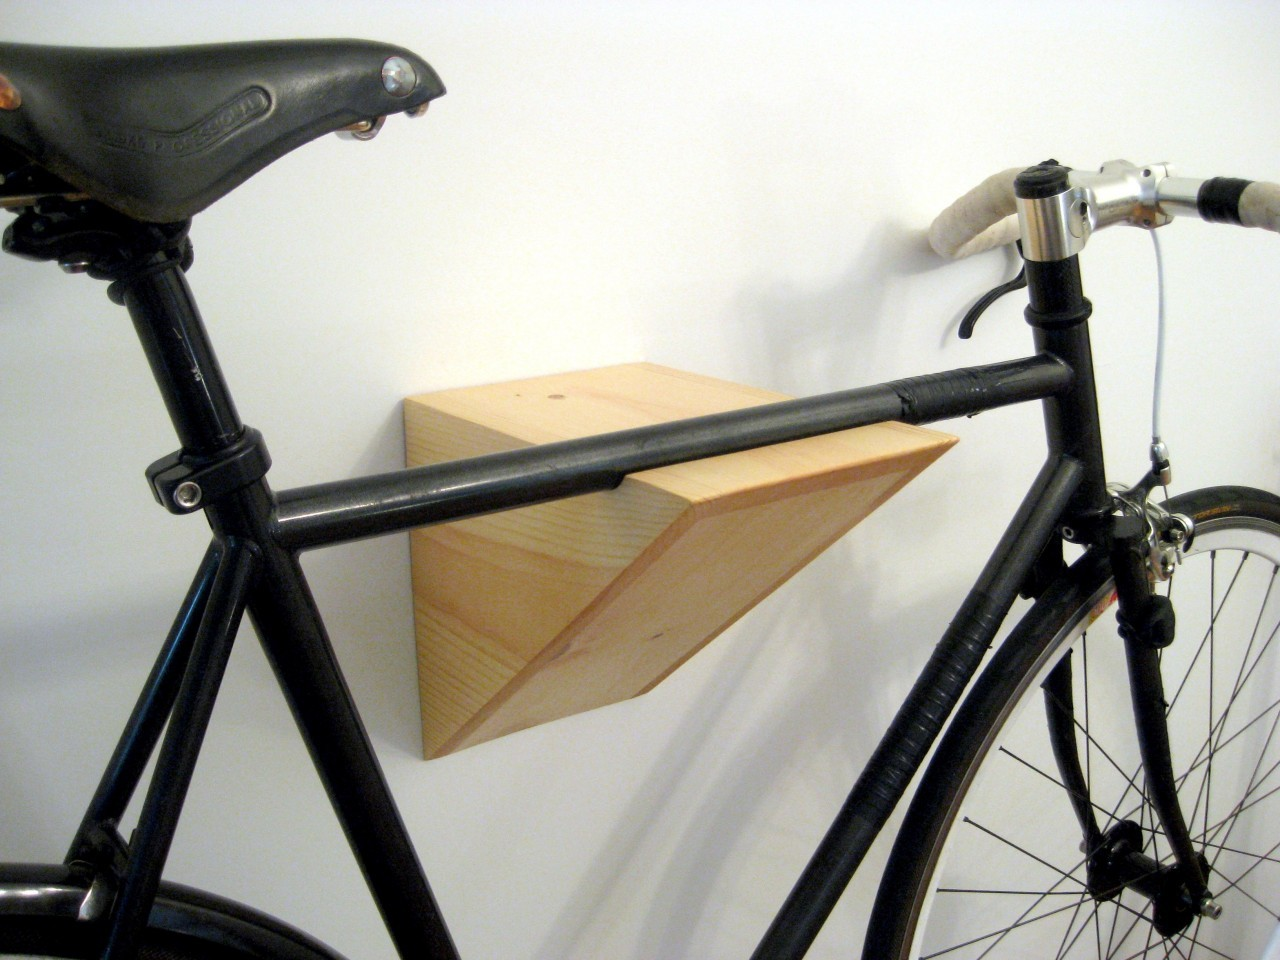 Diy Fahrrad Wandhalter Fahrrad Wandhalterung Holz Diy Trophy Club Bike Racks It Started With A Fight